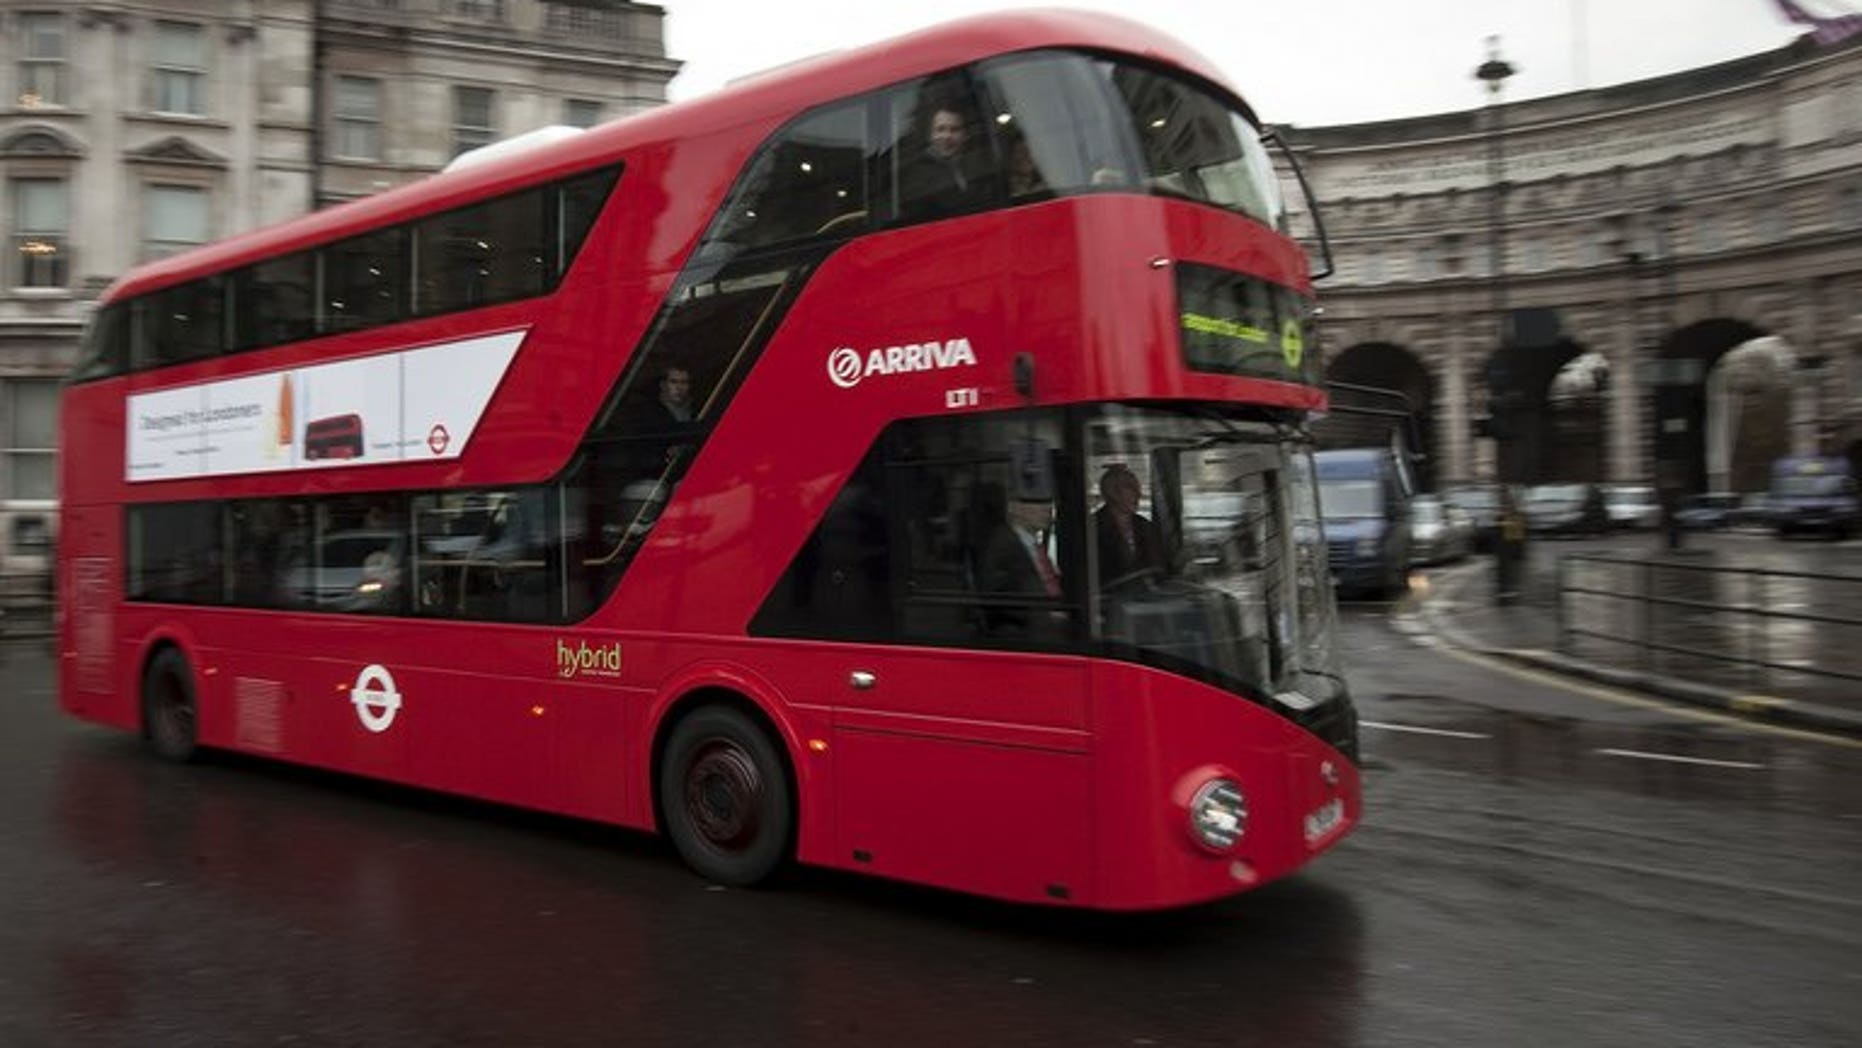 A bus drives along a street in central London on December 16, 2011. There's a screaming head by Francis Bacon at the bus stop, and a landscape by John Constable in a shopping centre -- just some of the art forming part of a novel exhibition in Britain.